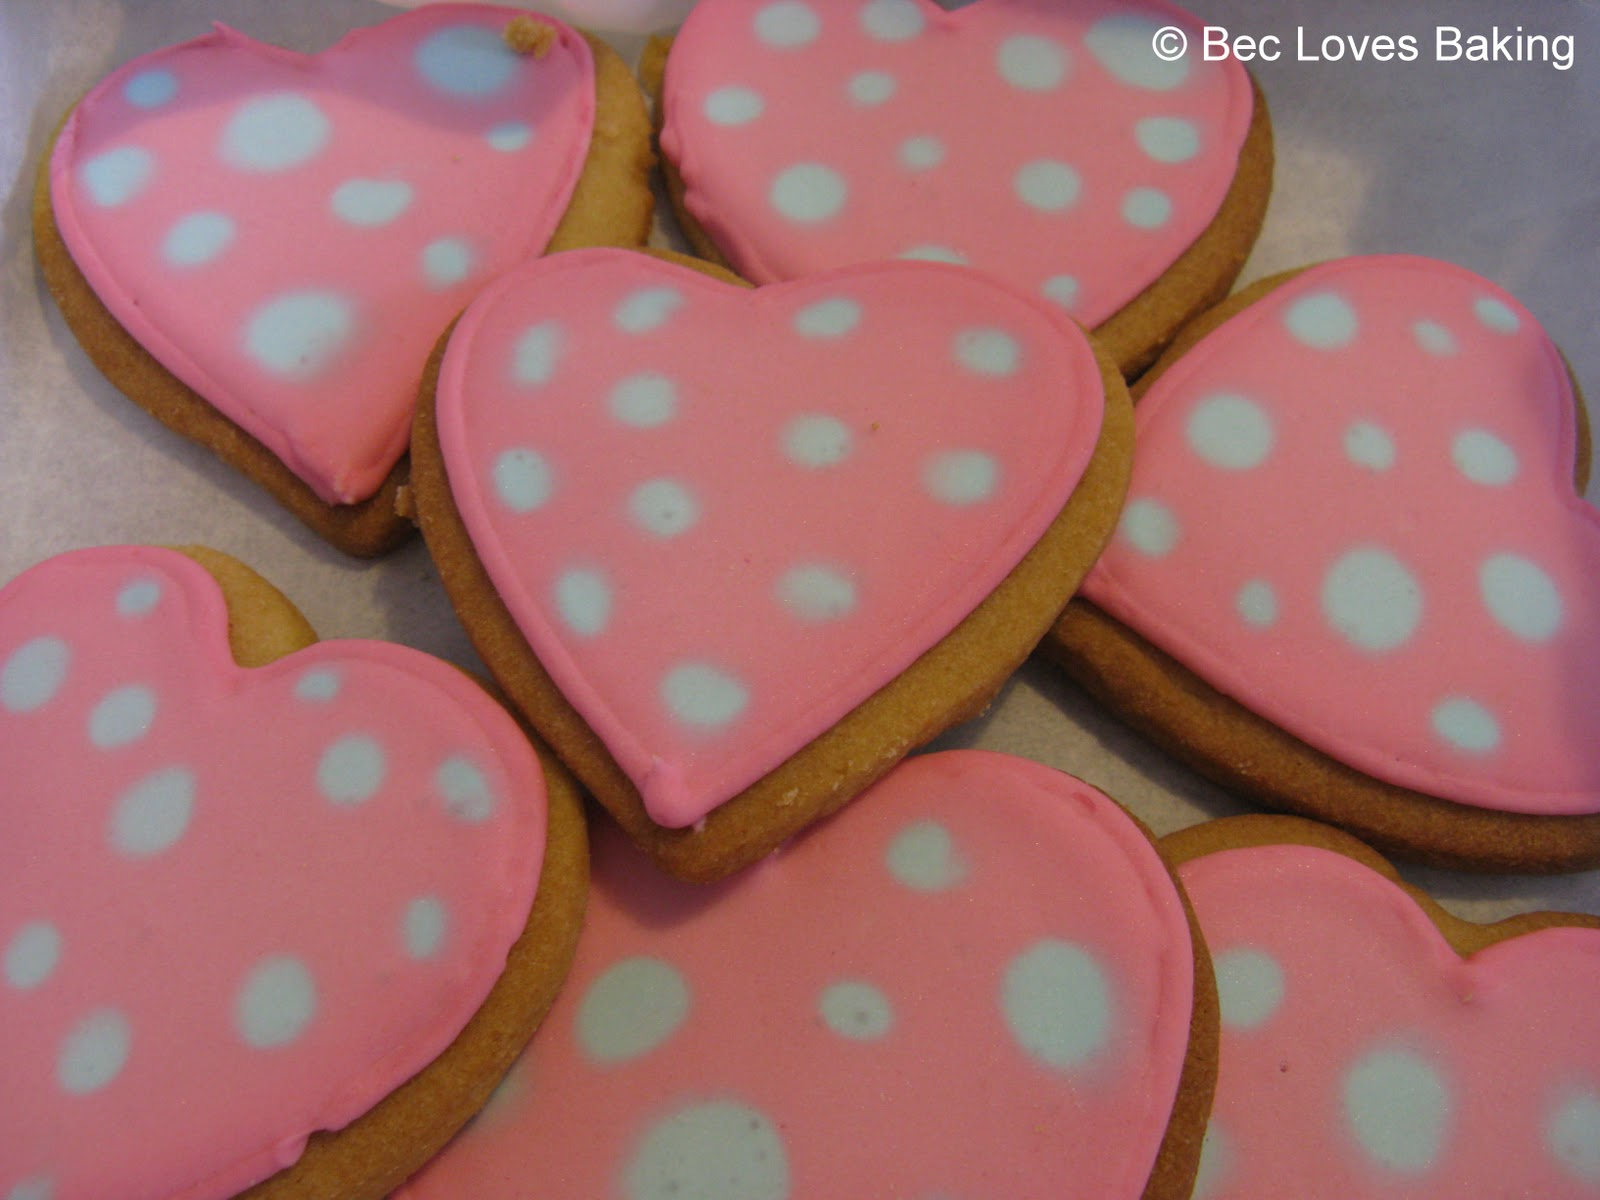 Bec Loves Baking: Vanilla Sugar Cookies with Royal Icing